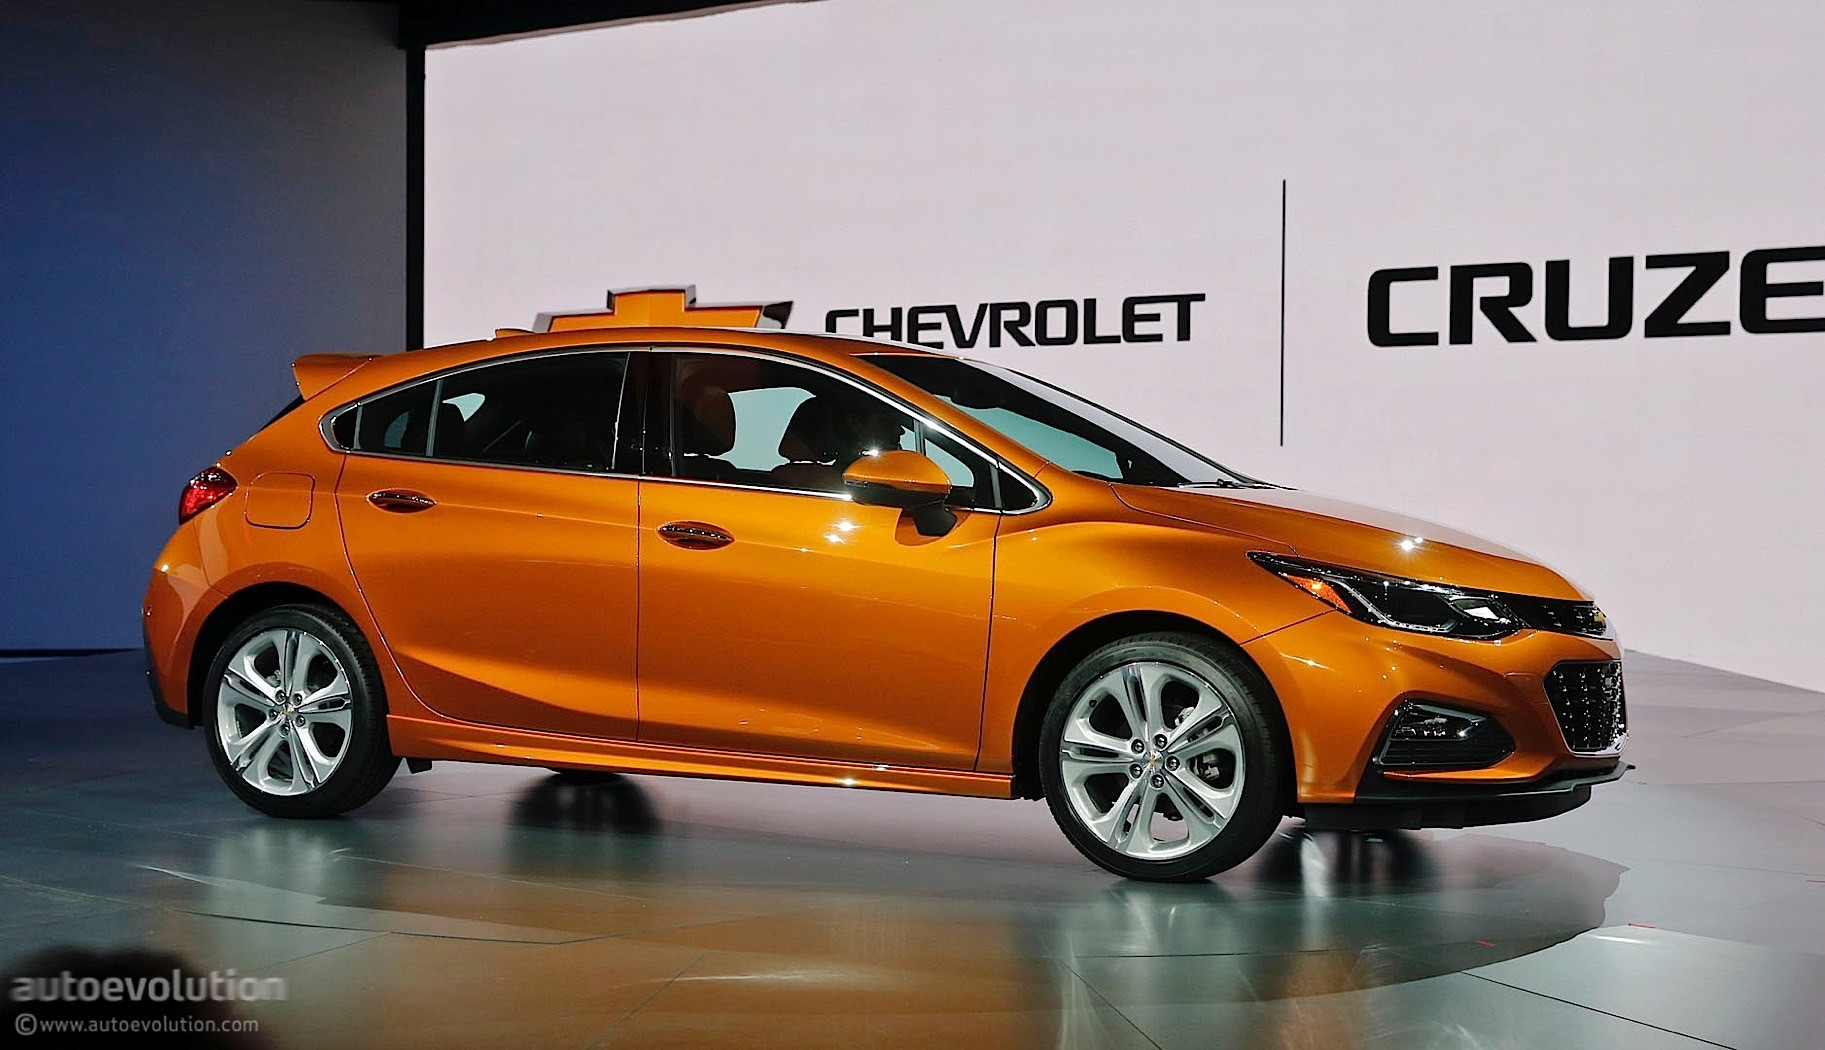 2017 chevrolet cruze hatchback priced from 22 190. Black Bedroom Furniture Sets. Home Design Ideas